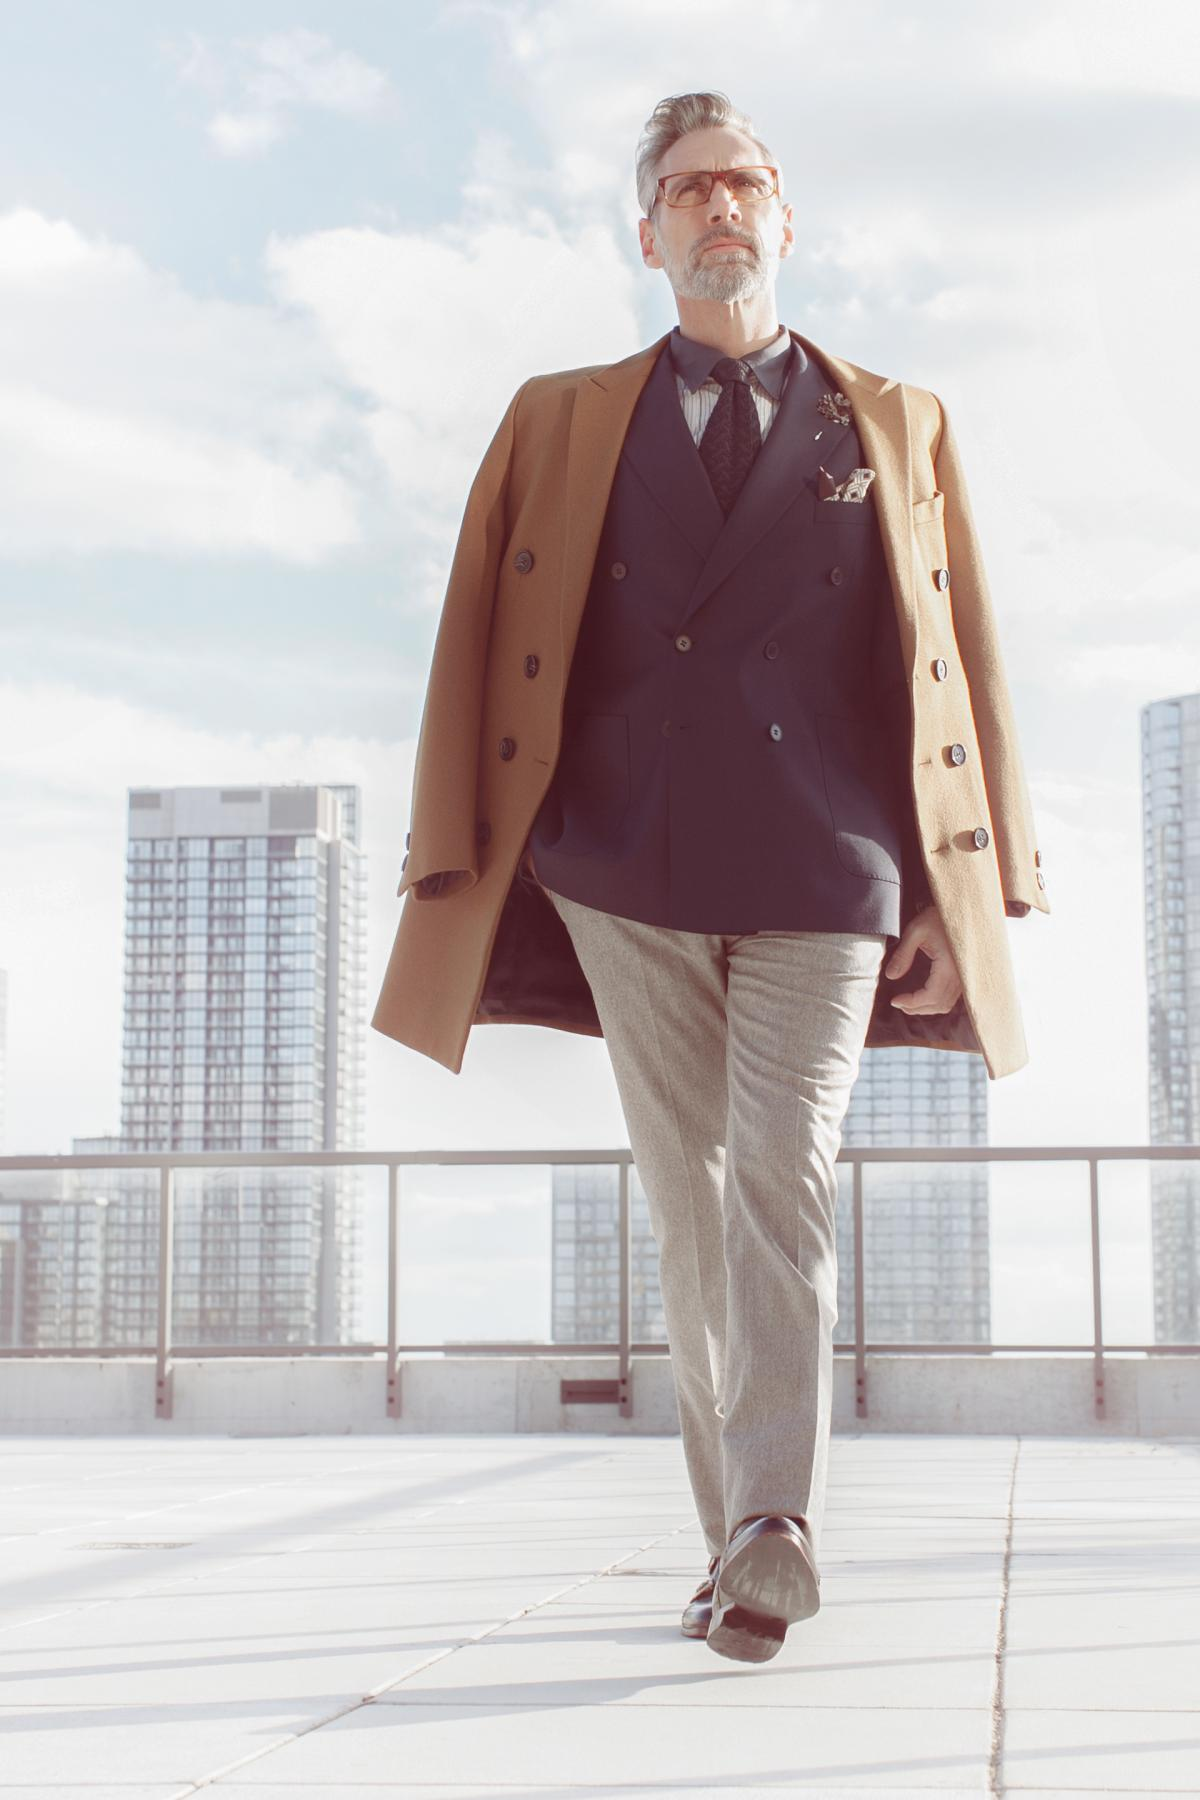 Expensive look for successful man. Dark jacket, light pants and brown coat for cold season